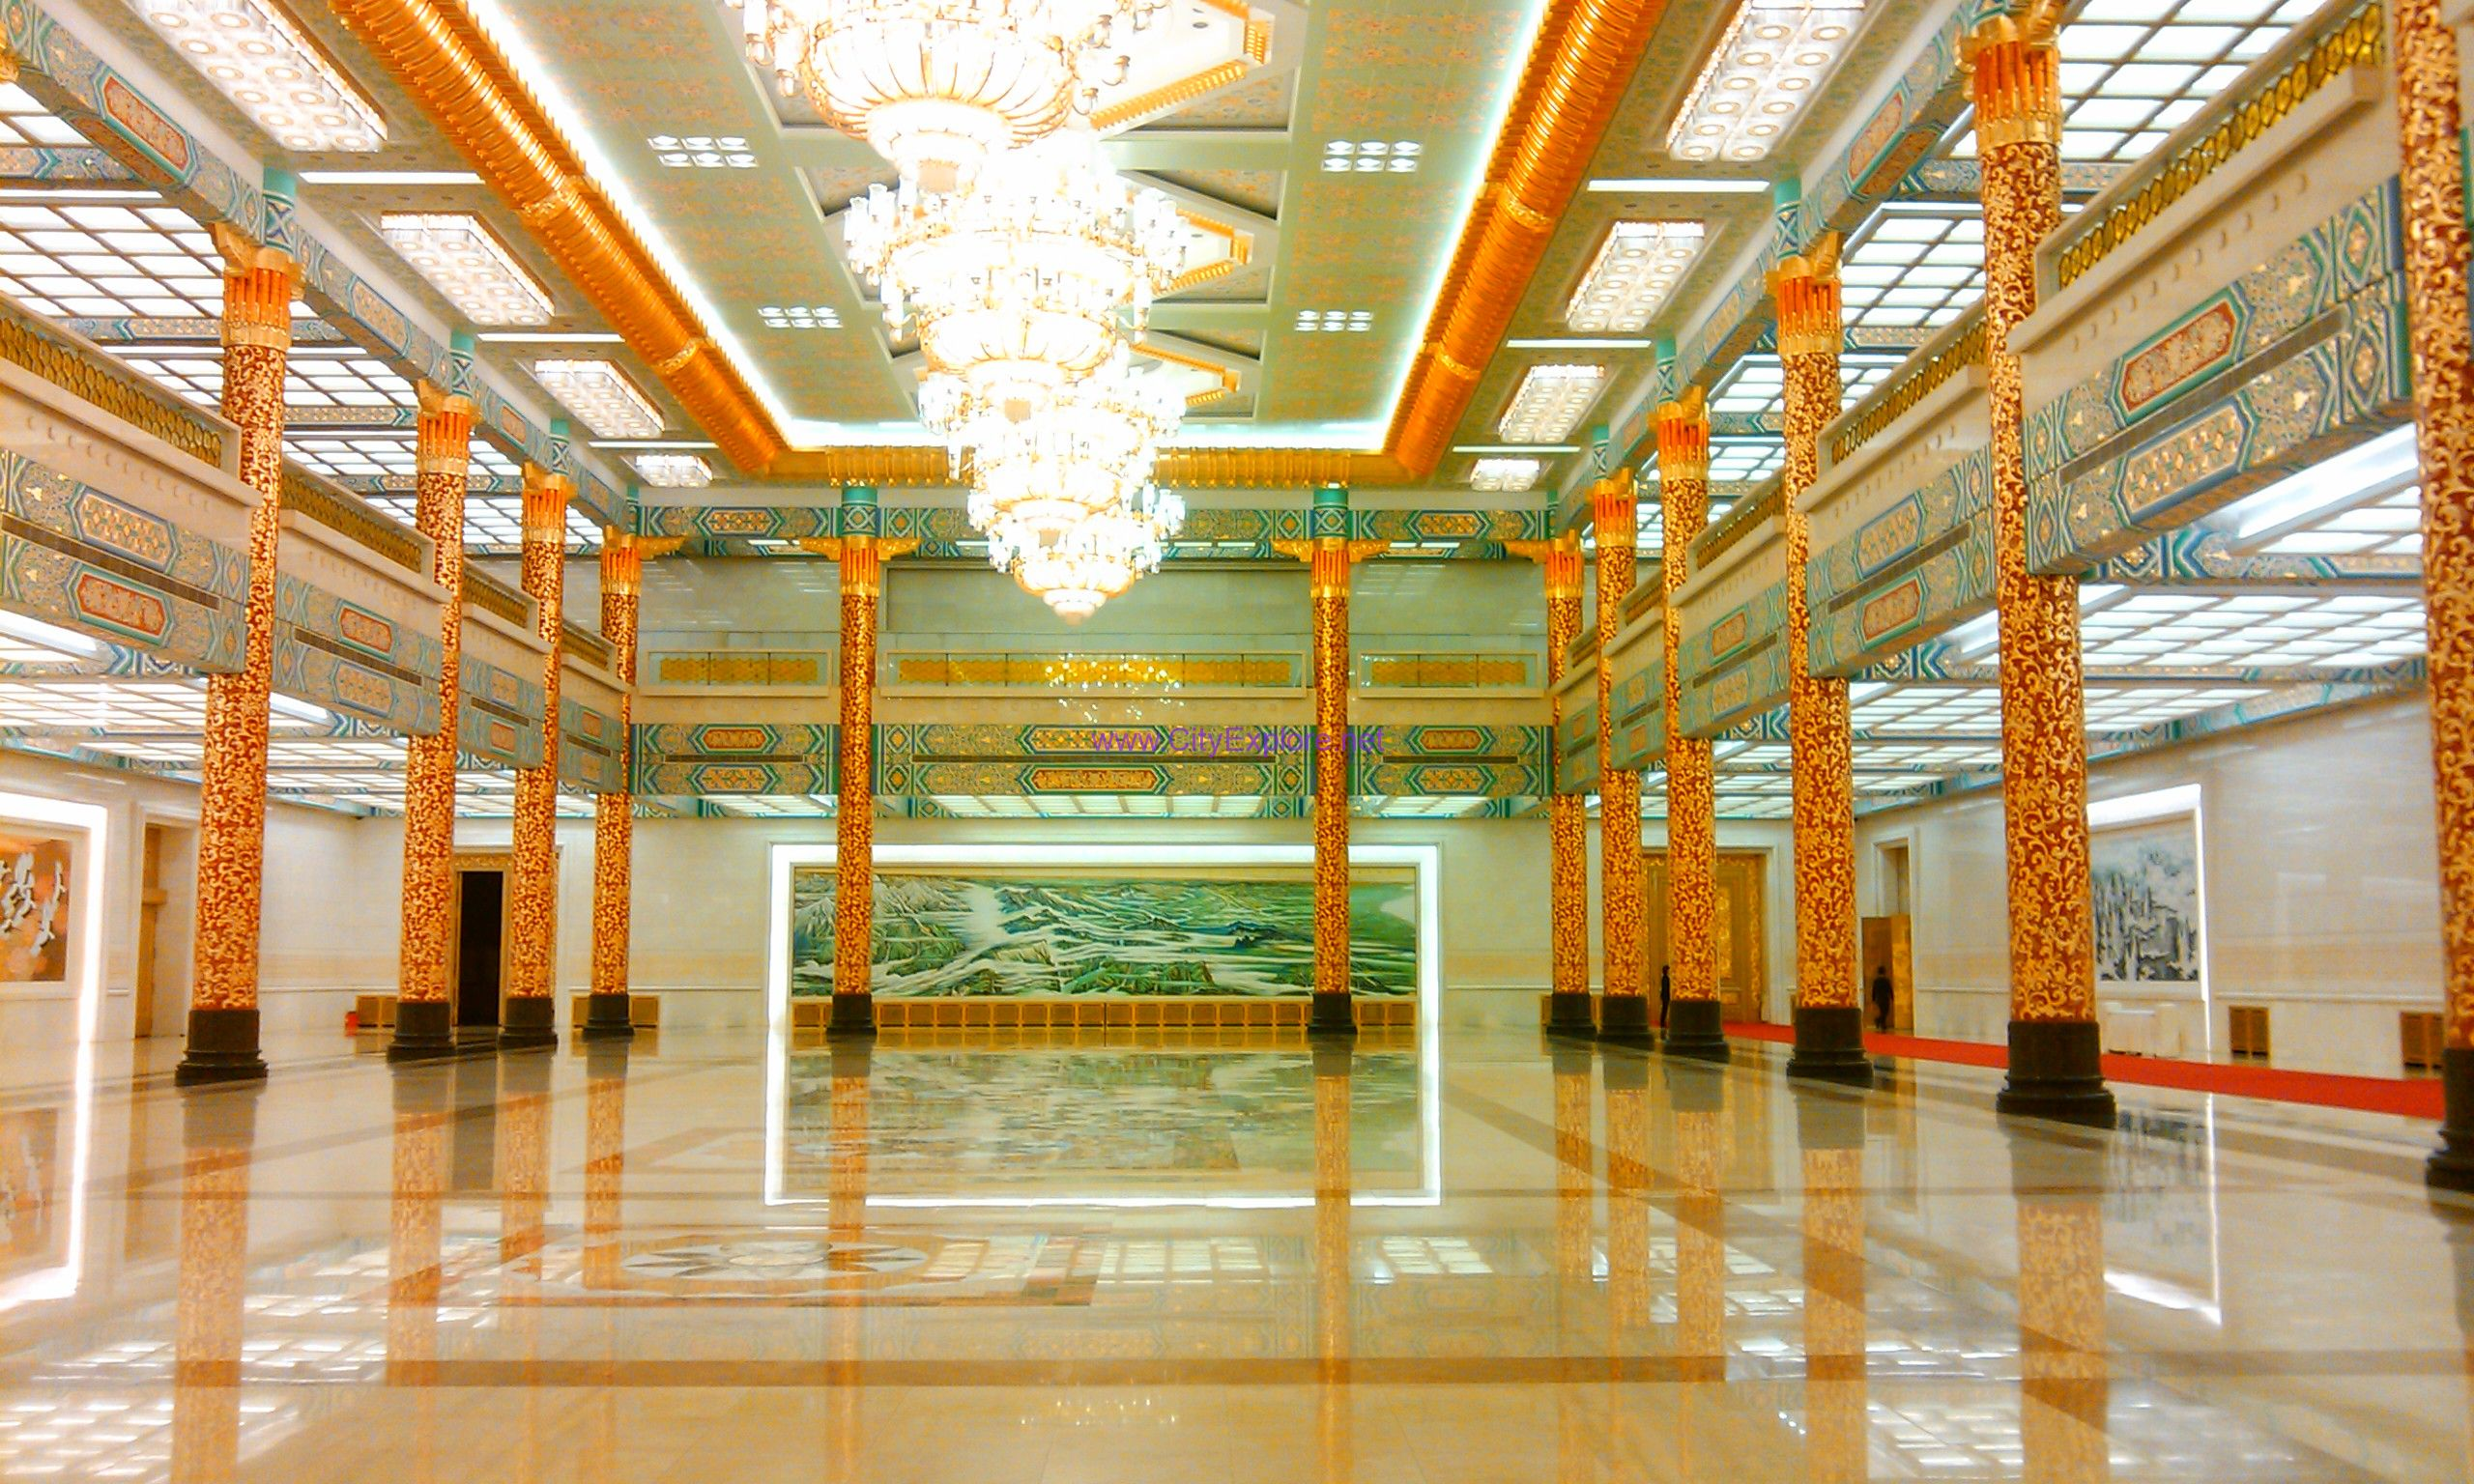 The golden hall in The Great Hall of the People